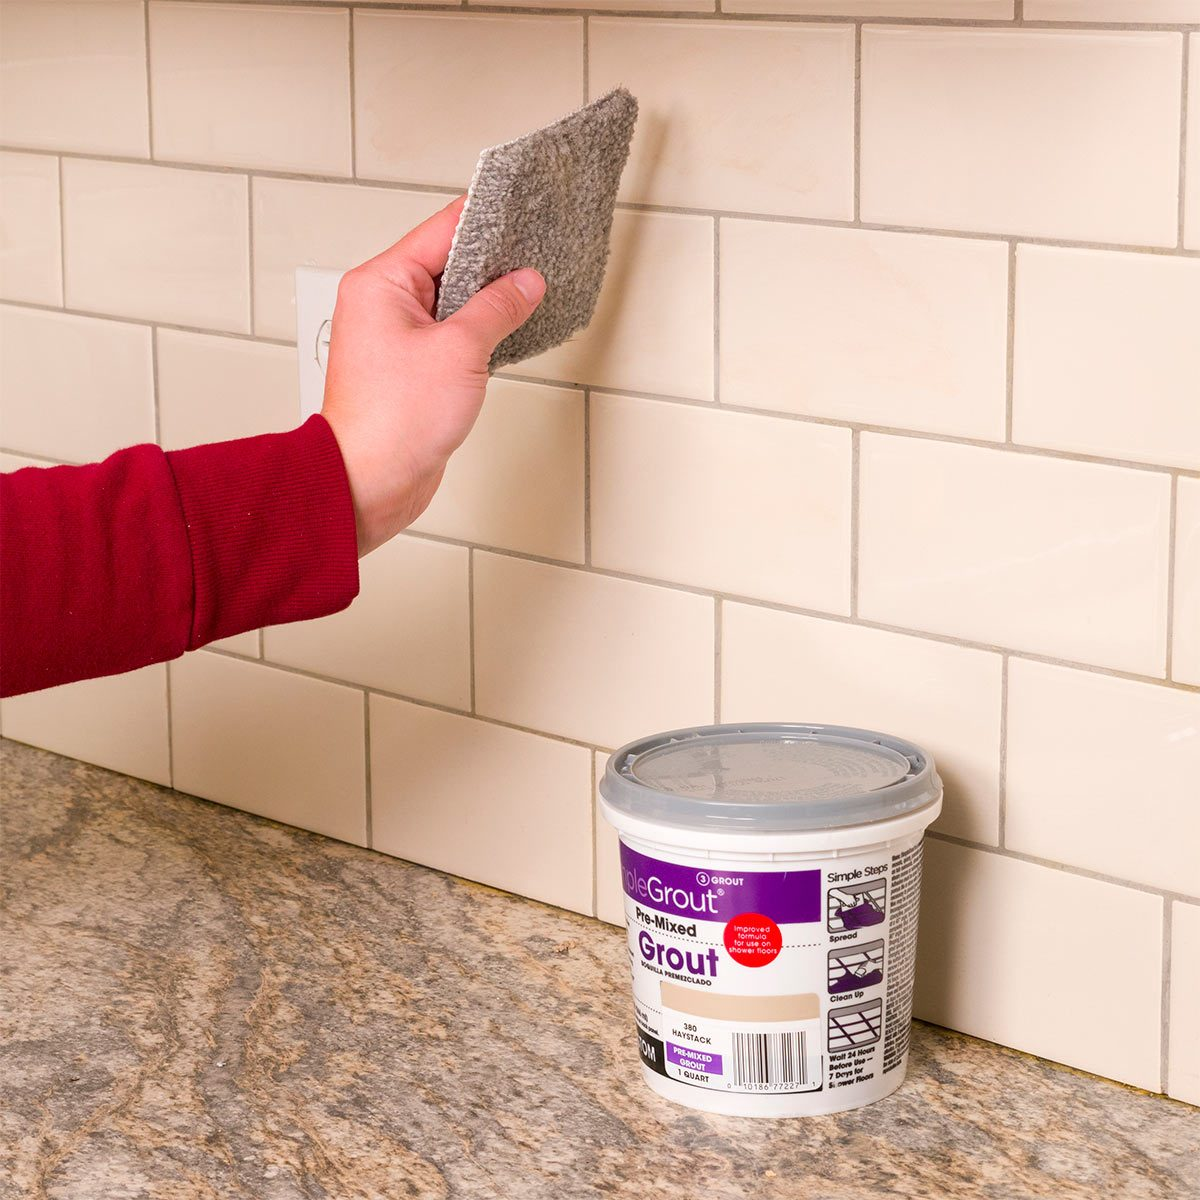 How to grout tile grouting tips and techniques family handyman buff away grout haze with carpet dailygadgetfo Image collections